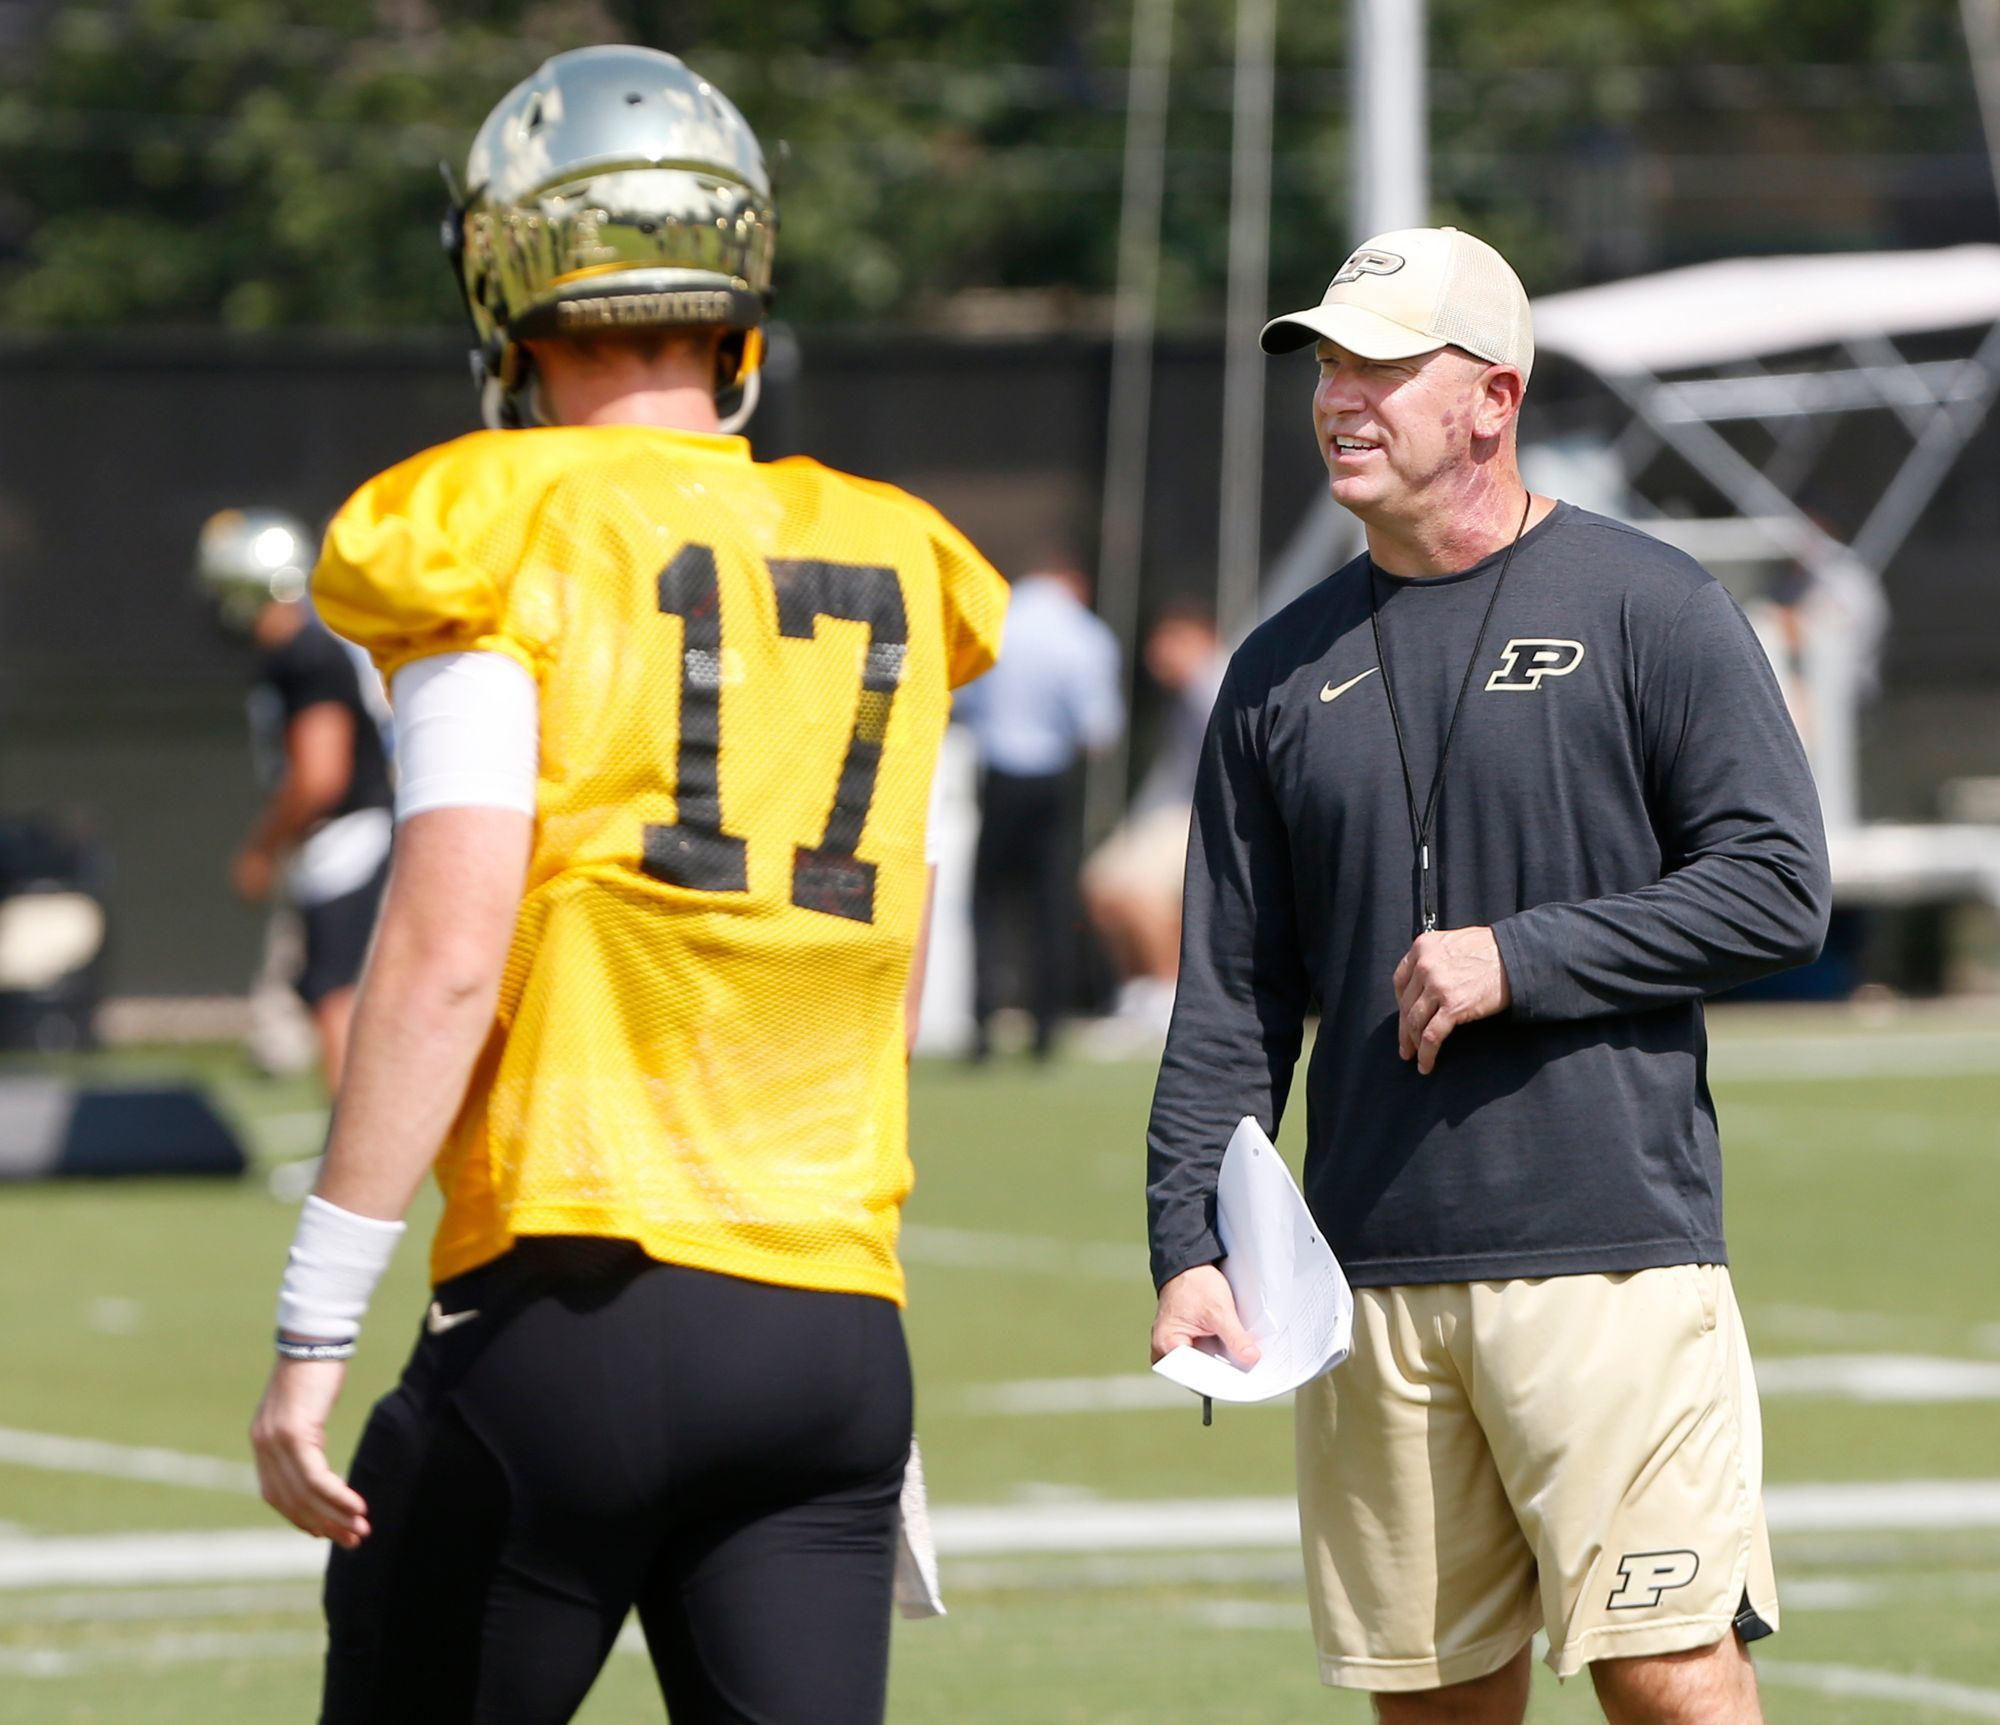 Purdue Calendar 2020 Search for QB in Purdue football's 2020 recruiting class stays on